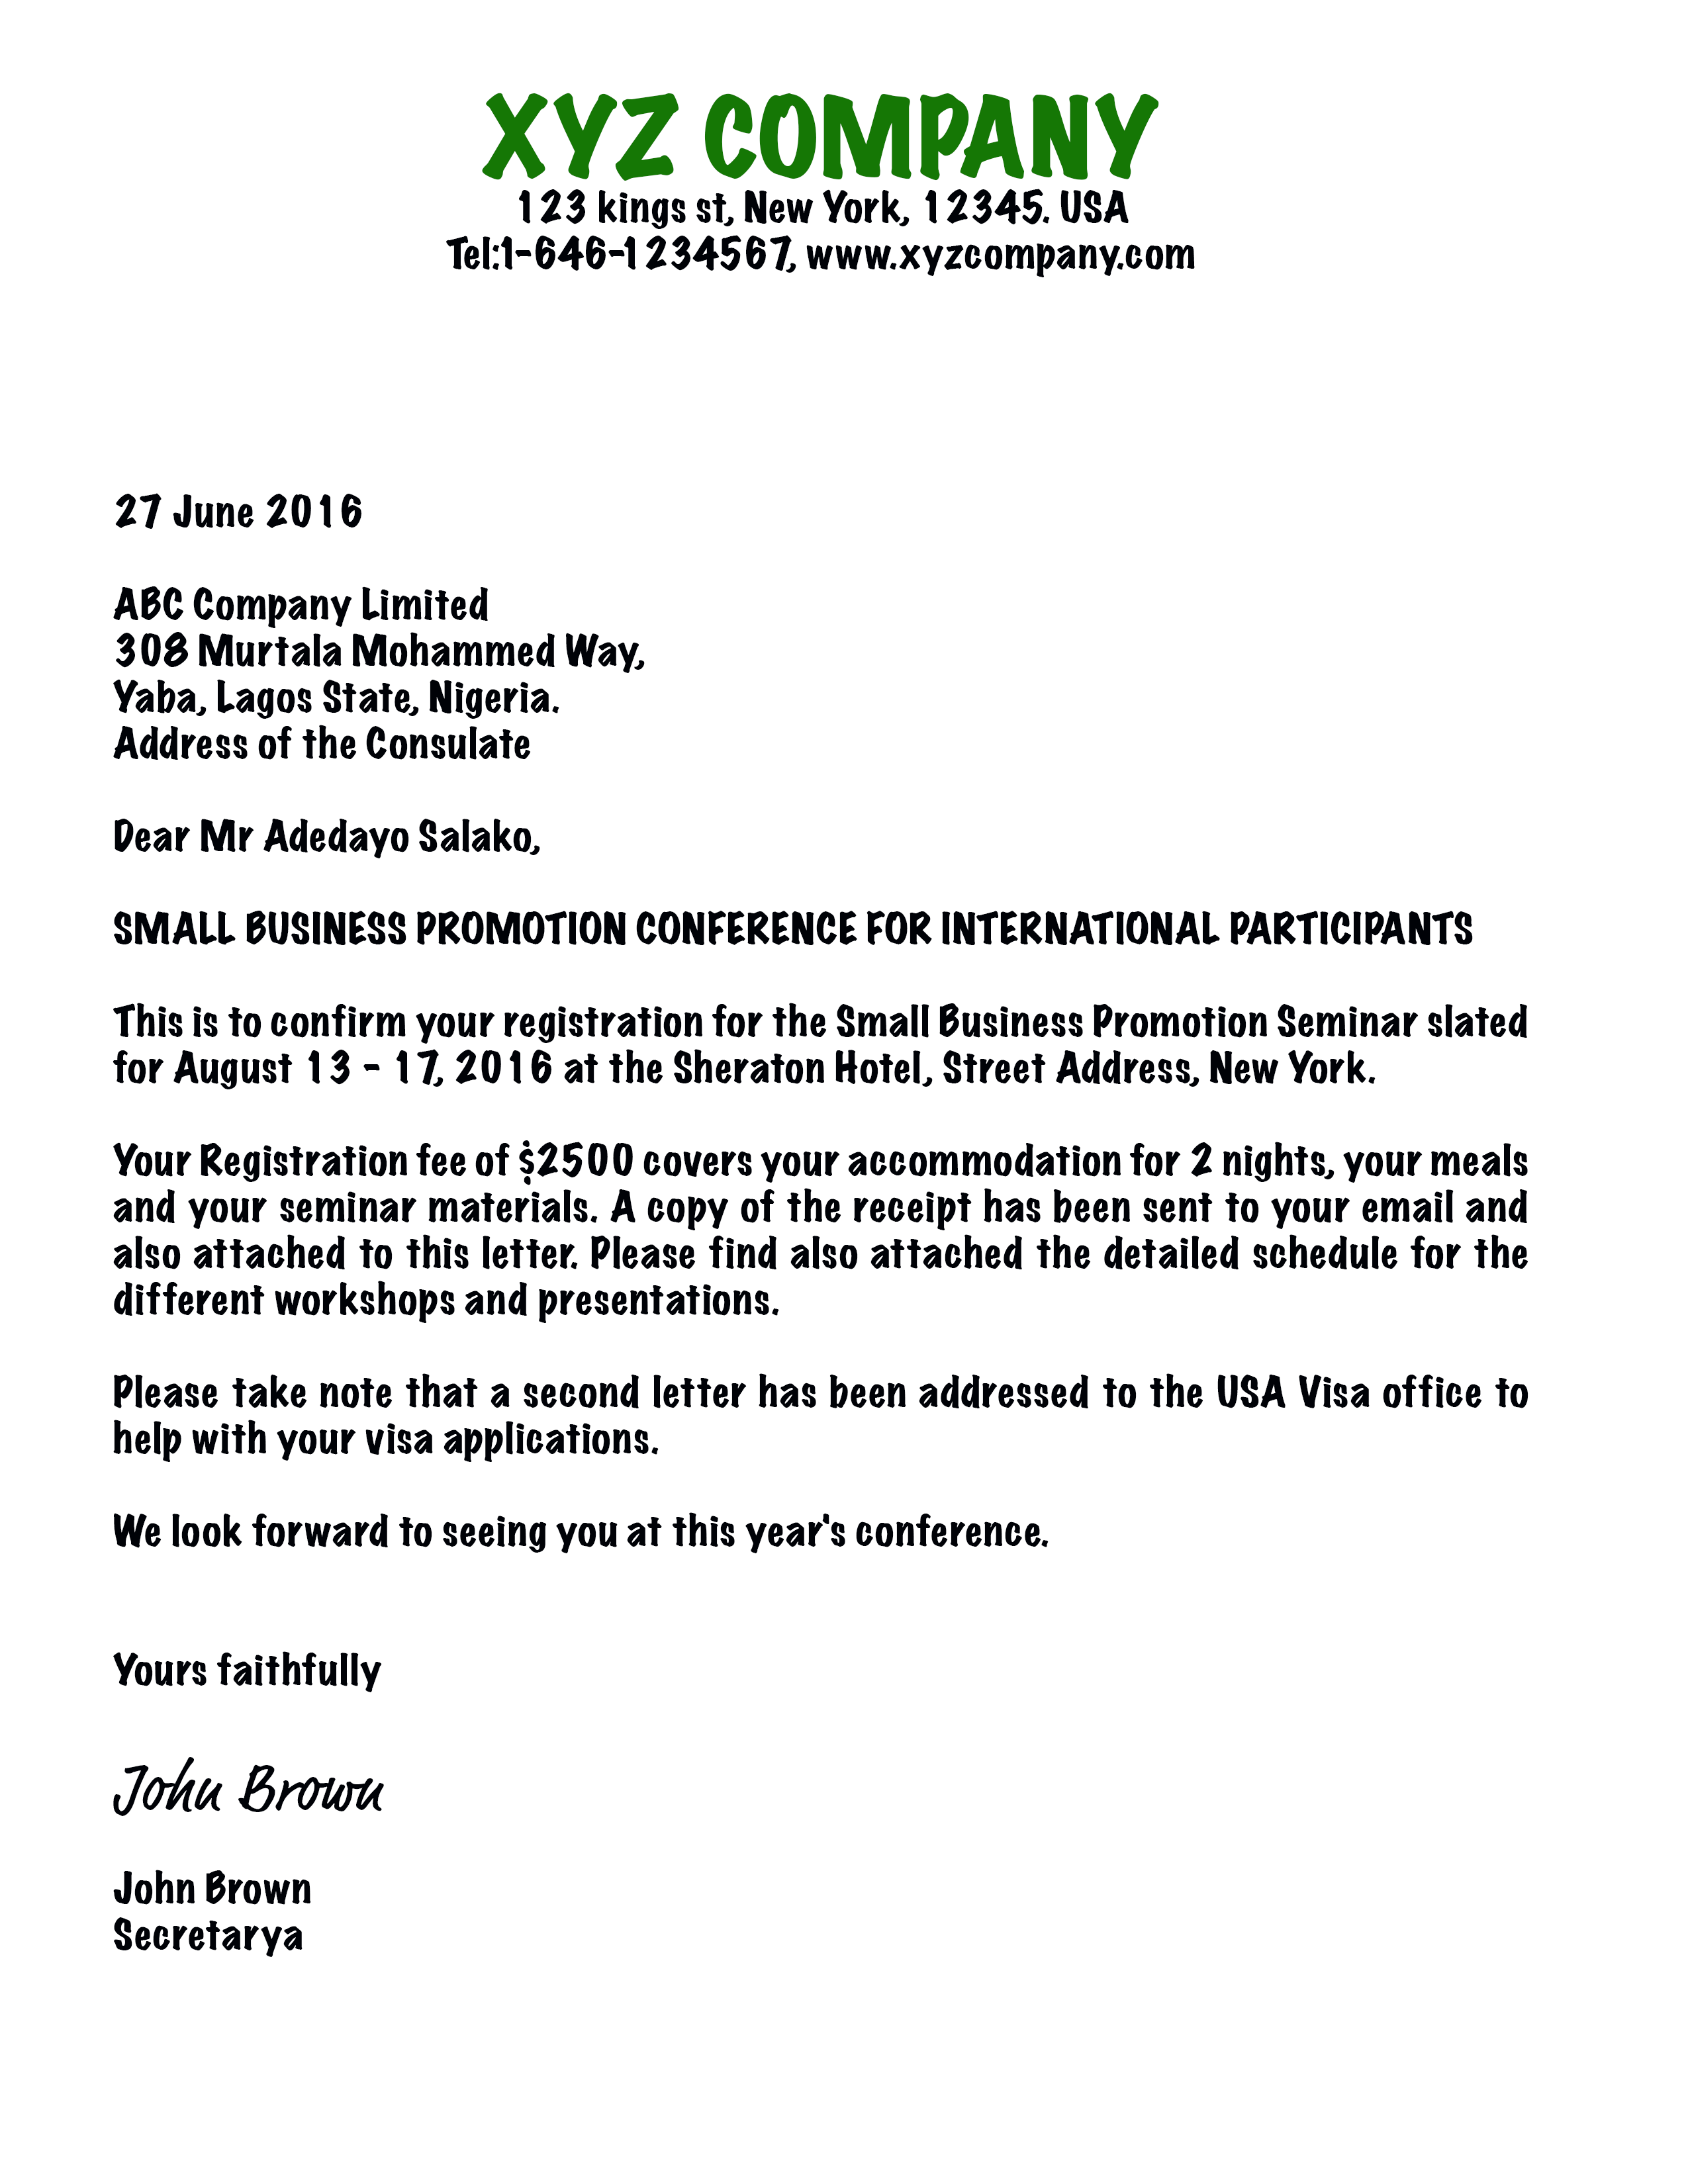 Business letter invitation to an event sponsorship contracts invitation letter for business visa usa the sample meeting free 023cbca82de1935ad771103cff53db76 733242383052917786 business letter invitation to an event stopboris Image collections